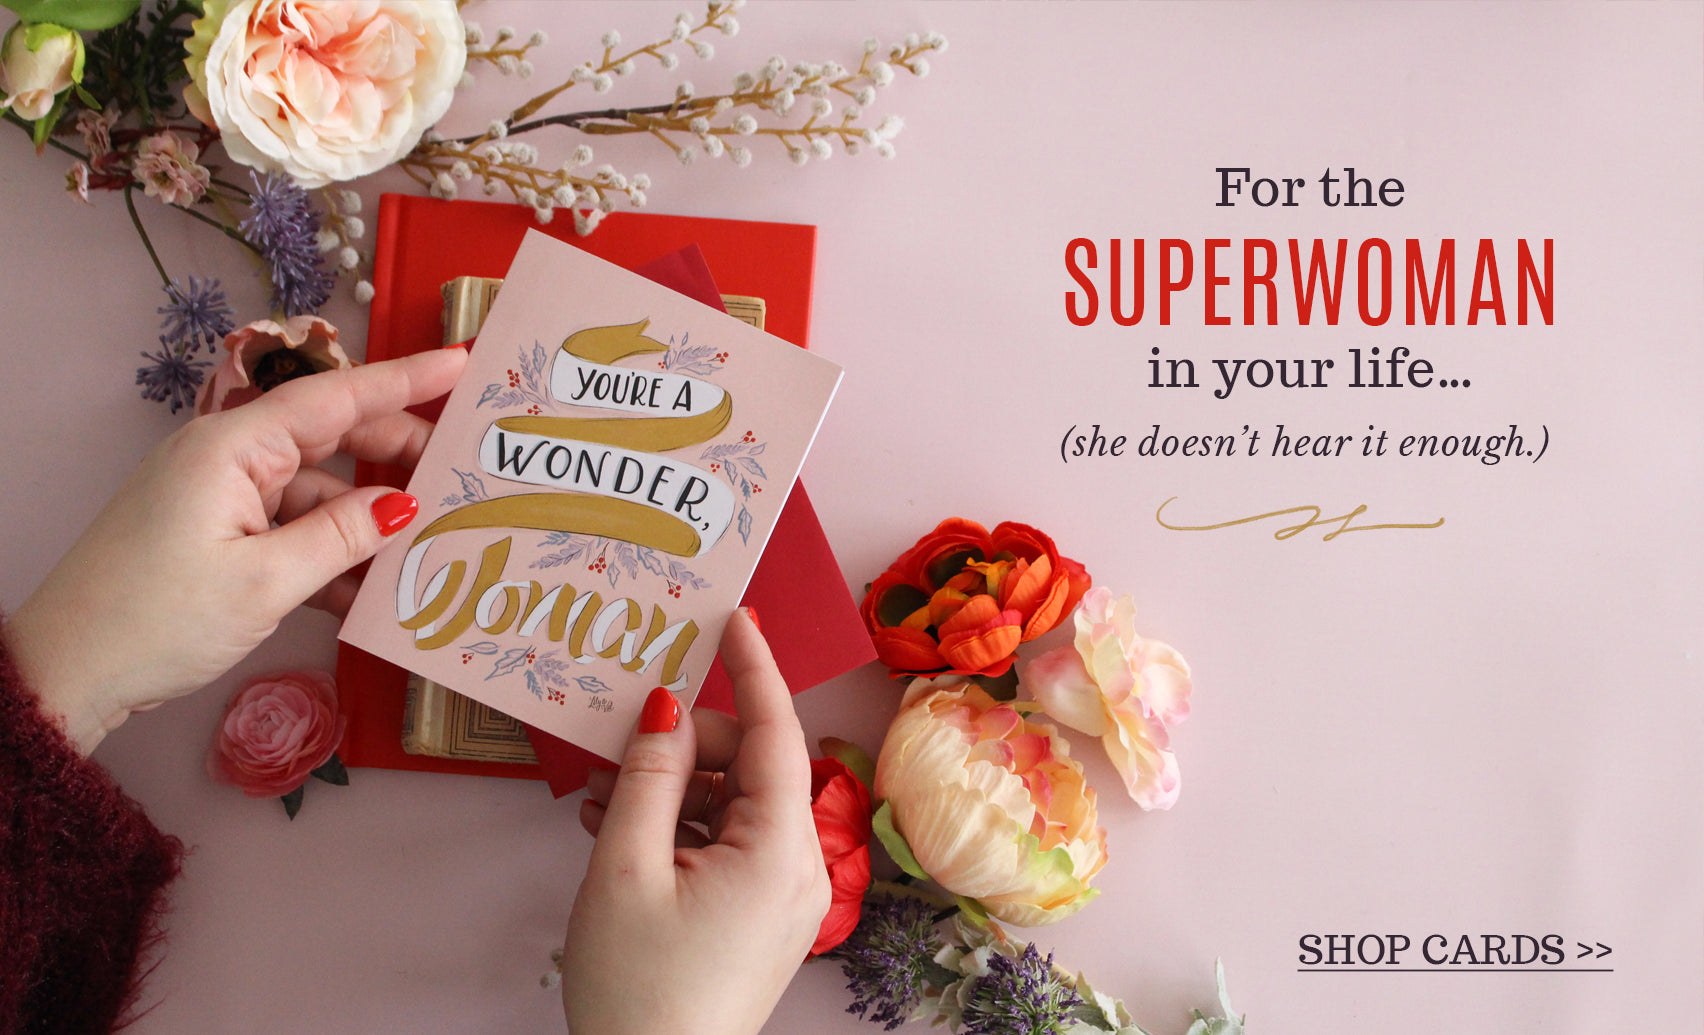 For the superwoman in your life!